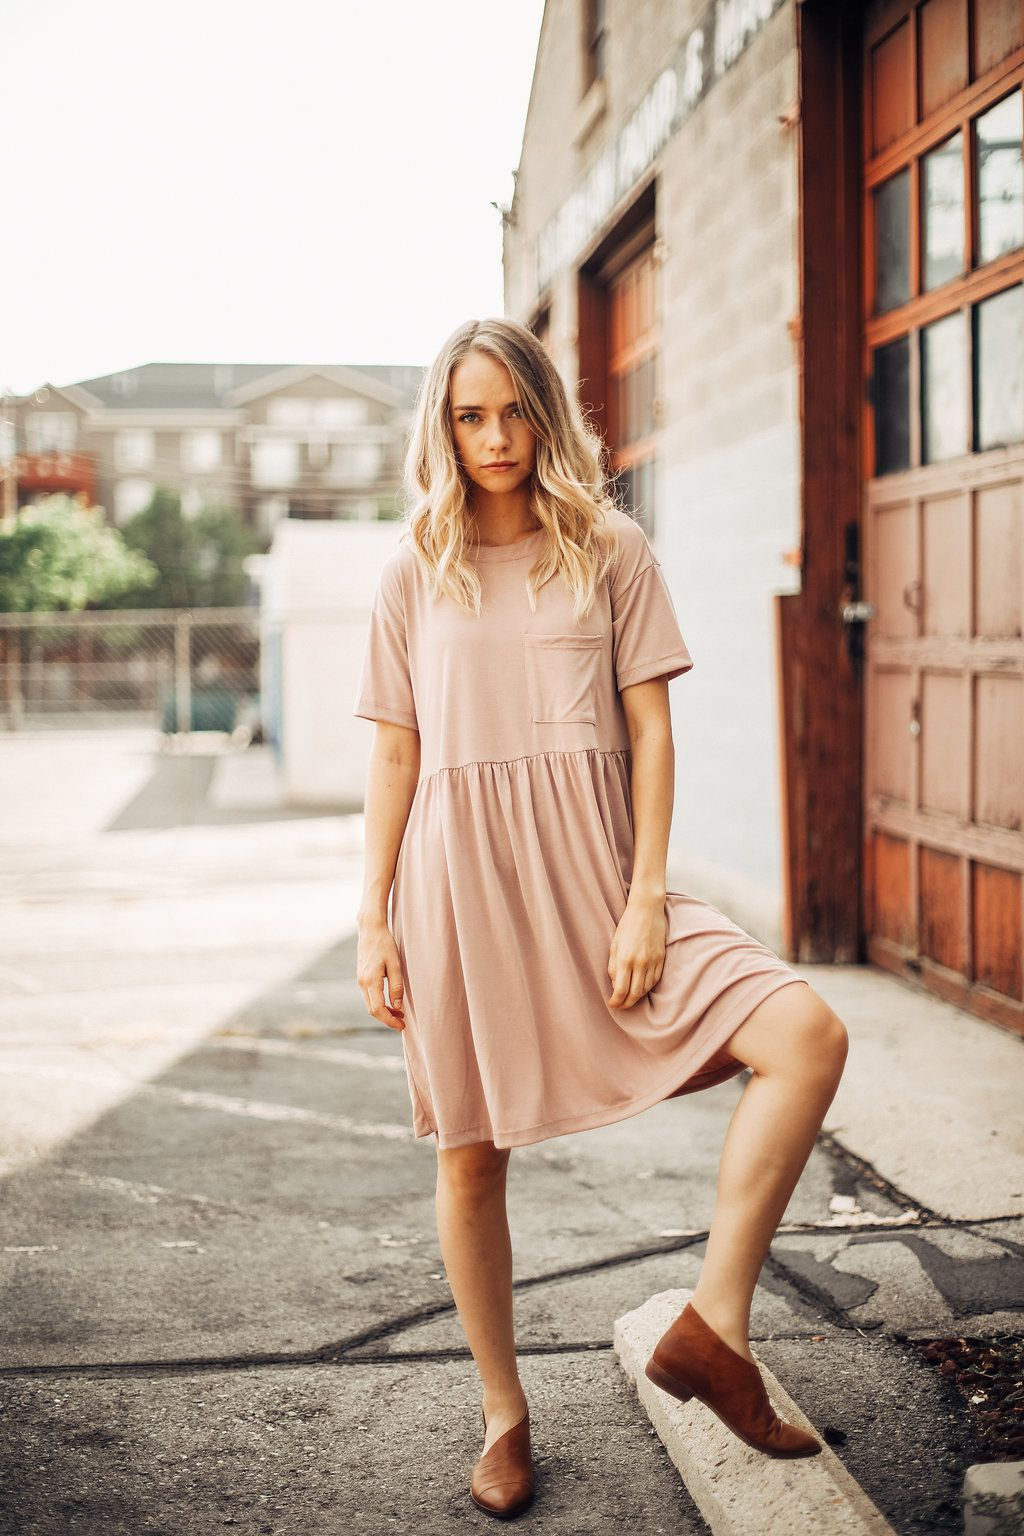 The Portrait Empire Dress In Blush Dresses Womens Clothing Dresses Casual Blush Outfit Casual Dresses For Women Modest Dresses